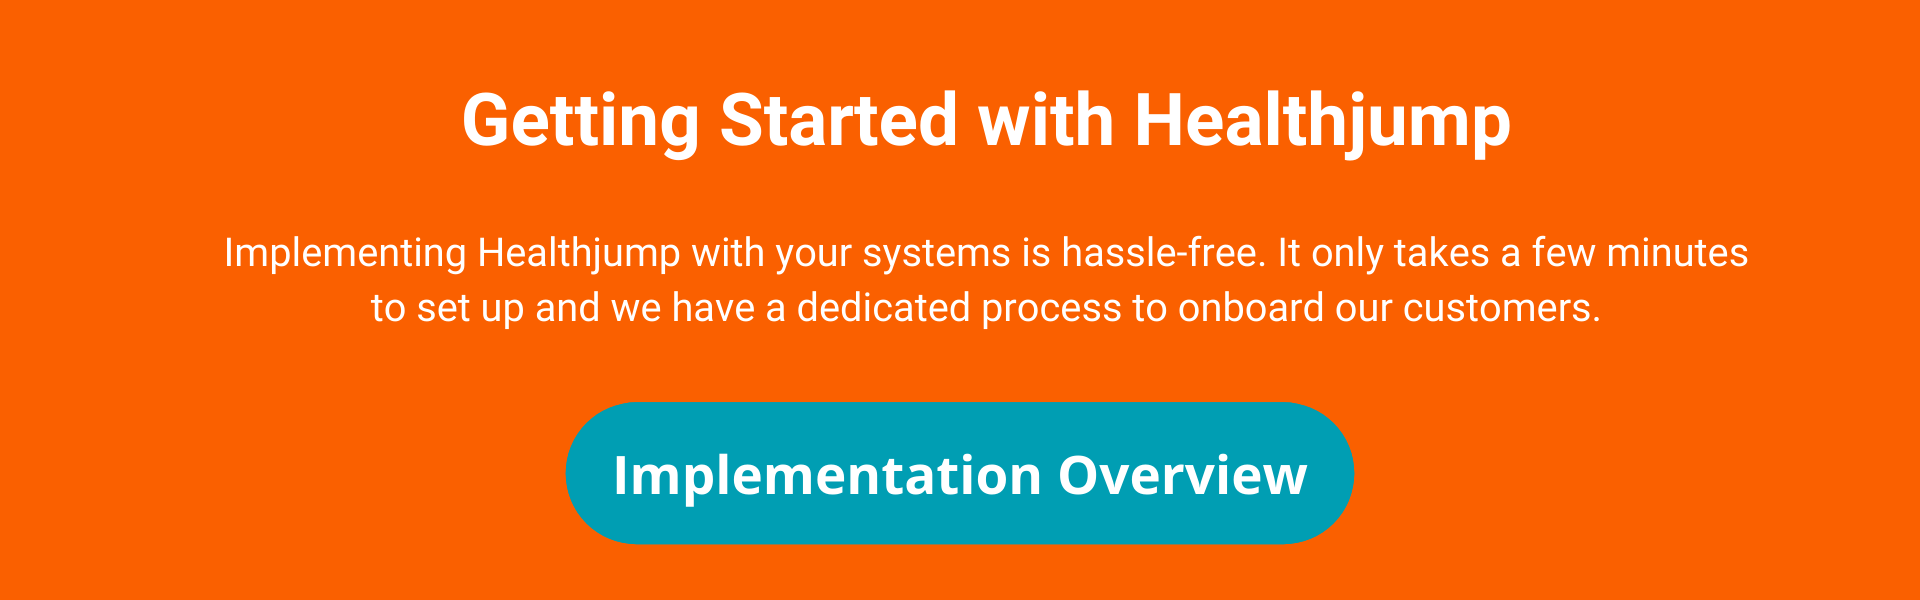 Healthjump Implementation Overview